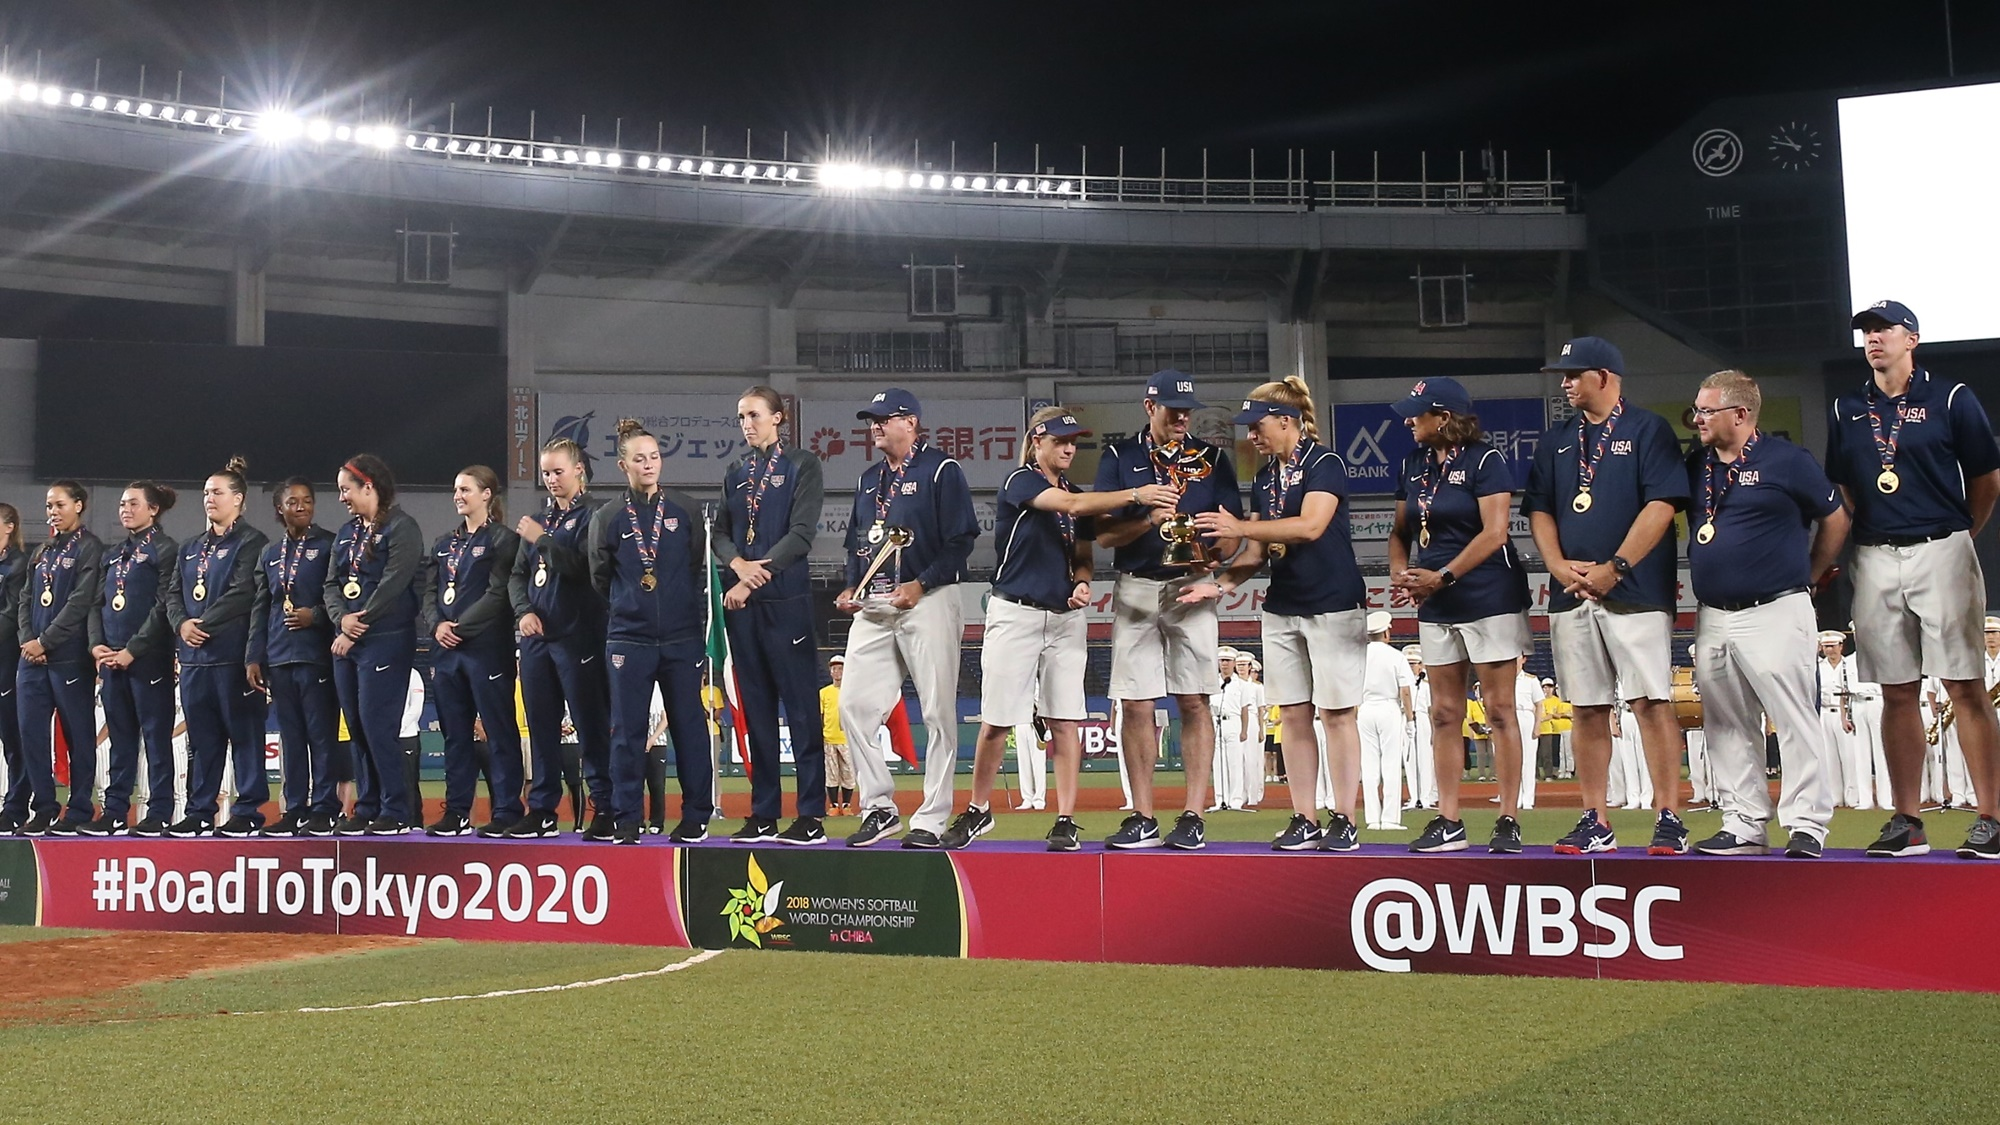 USA awarded the trophy of World Champions